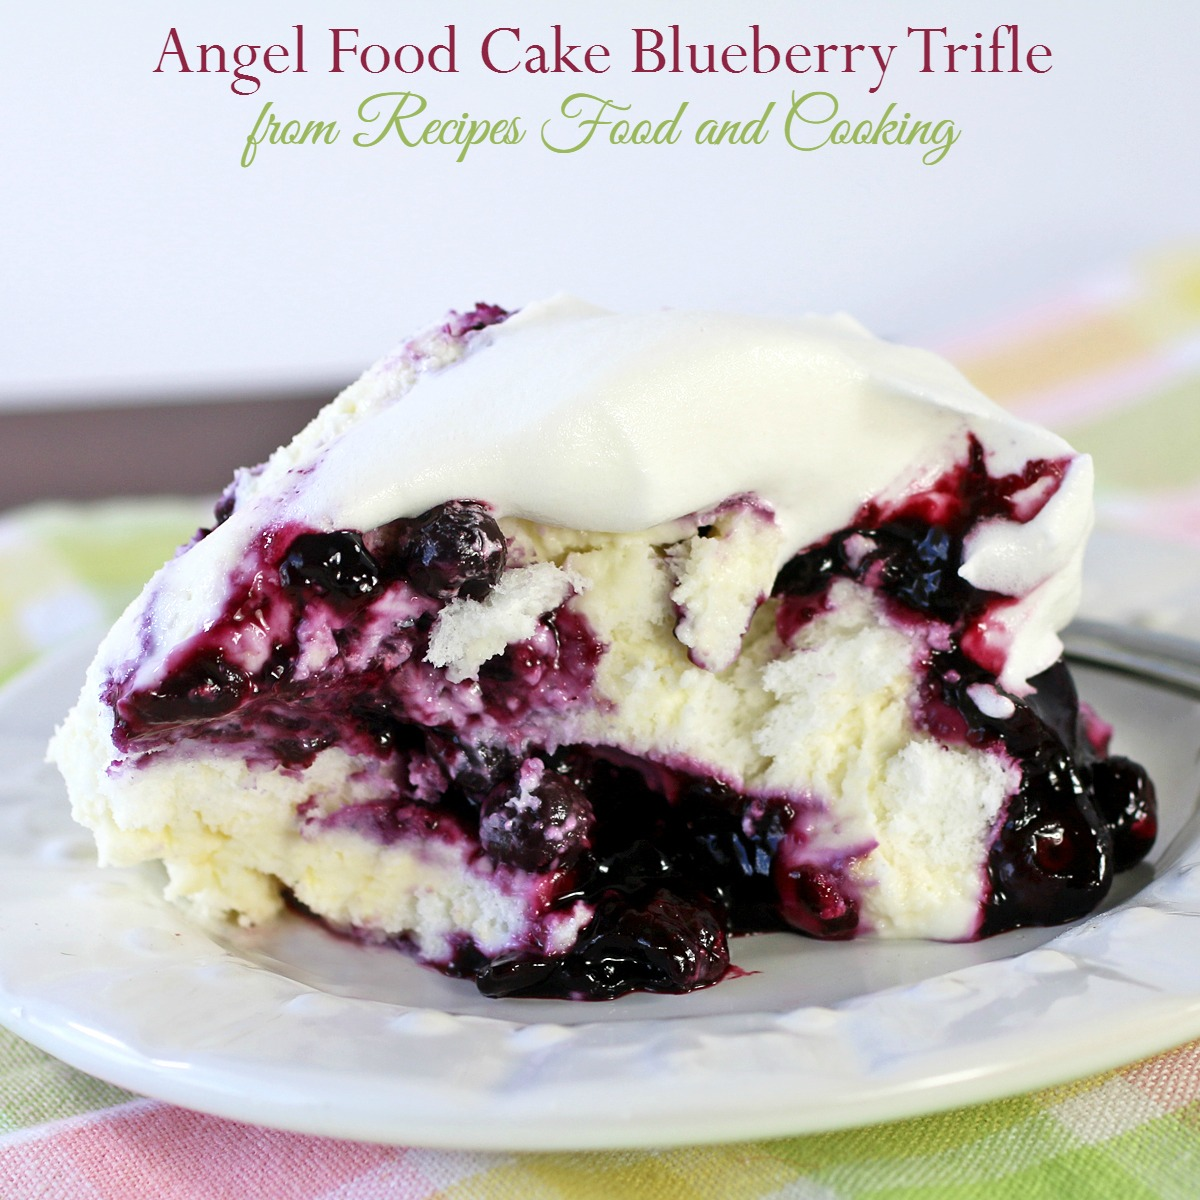 Angel food cake blueberry trifle recipes food and cooking forumfinder Images